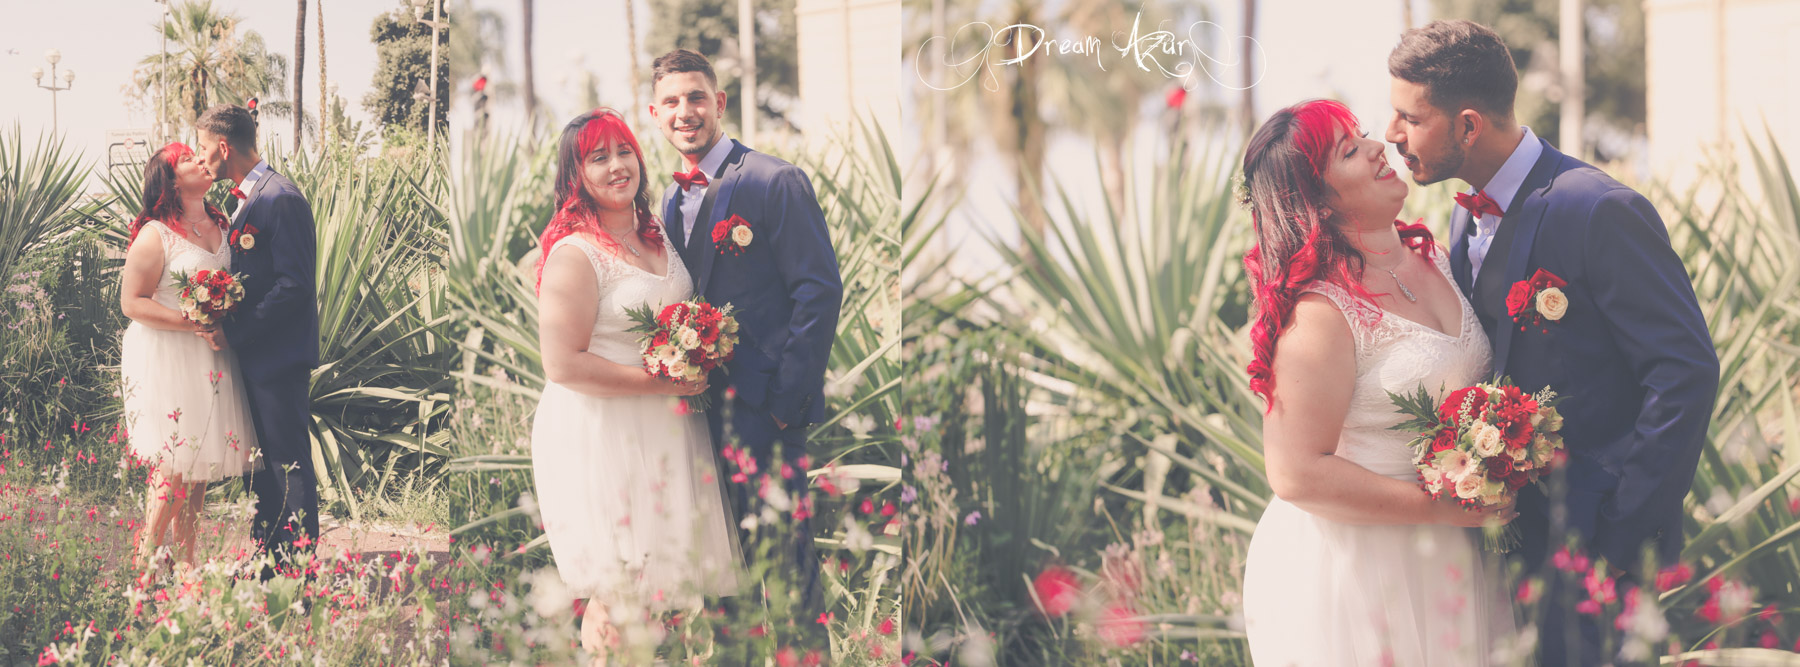 190824COMPO-Mariage-Cindy-et-Anthony-10